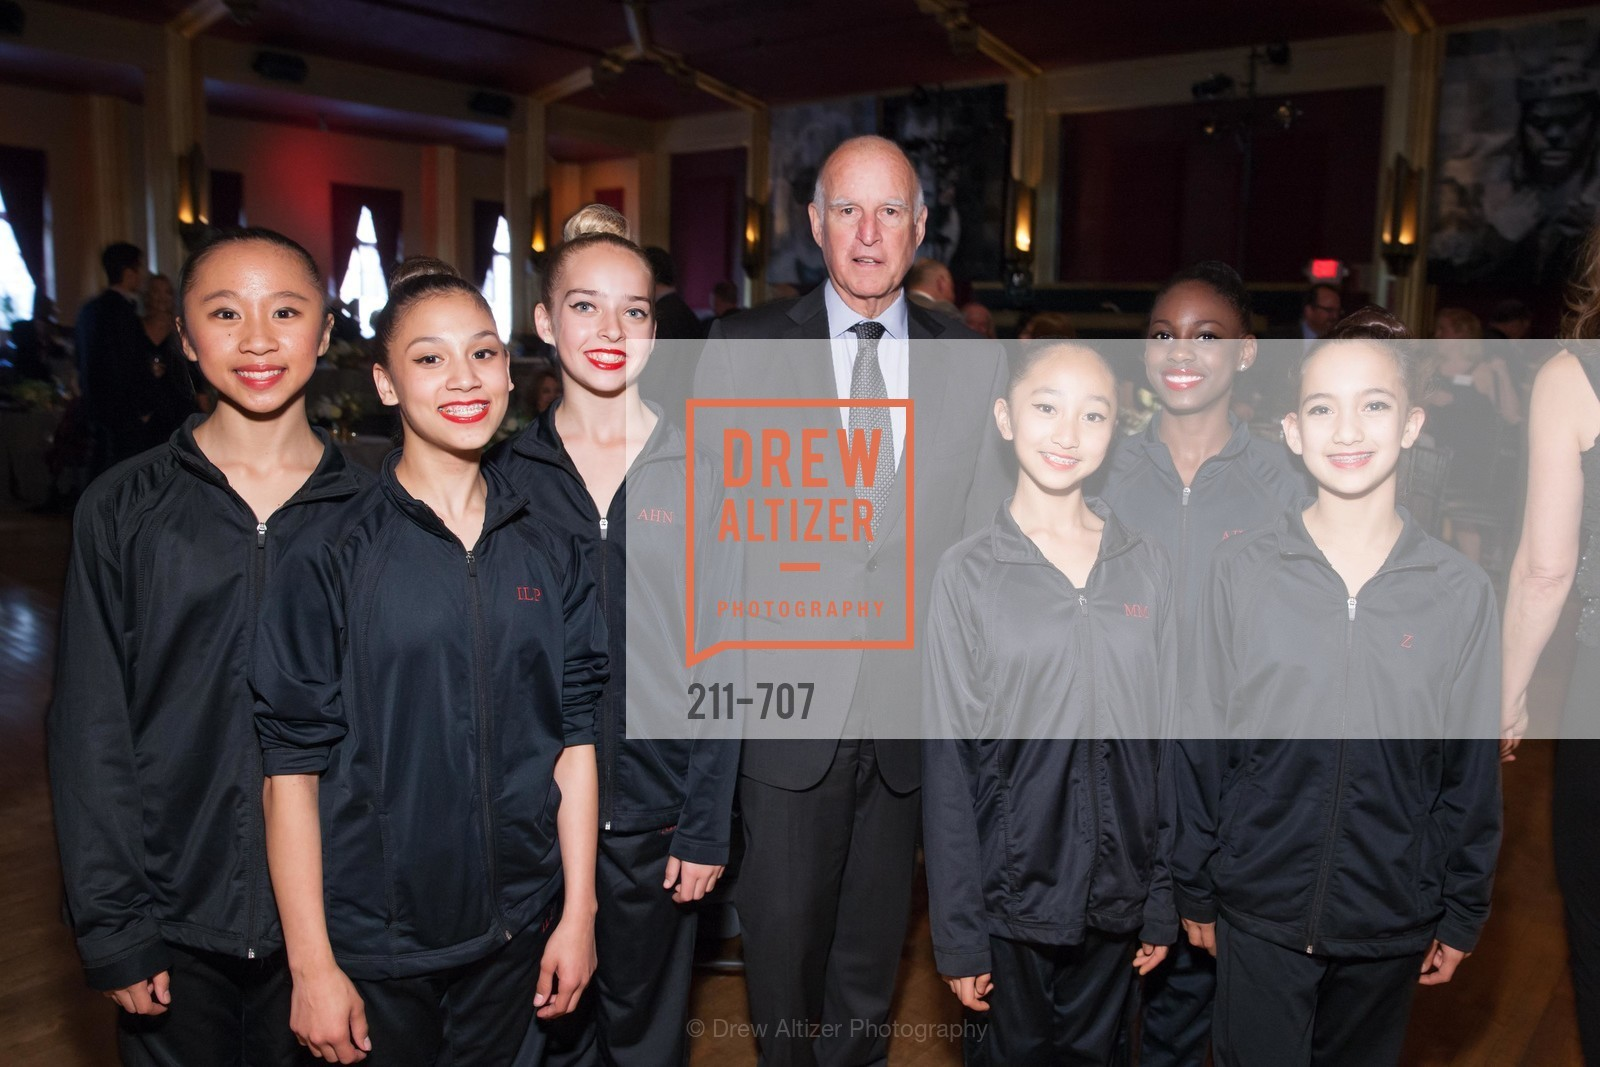 Students, Gov. Jerry Brown, OAKLAND SCHOOL FOR THE ARTS Gala 2015 with Governor Jerry Brown, US, May 8th, 2015,Drew Altizer, Drew Altizer Photography, full-service agency, private events, San Francisco photographer, photographer california